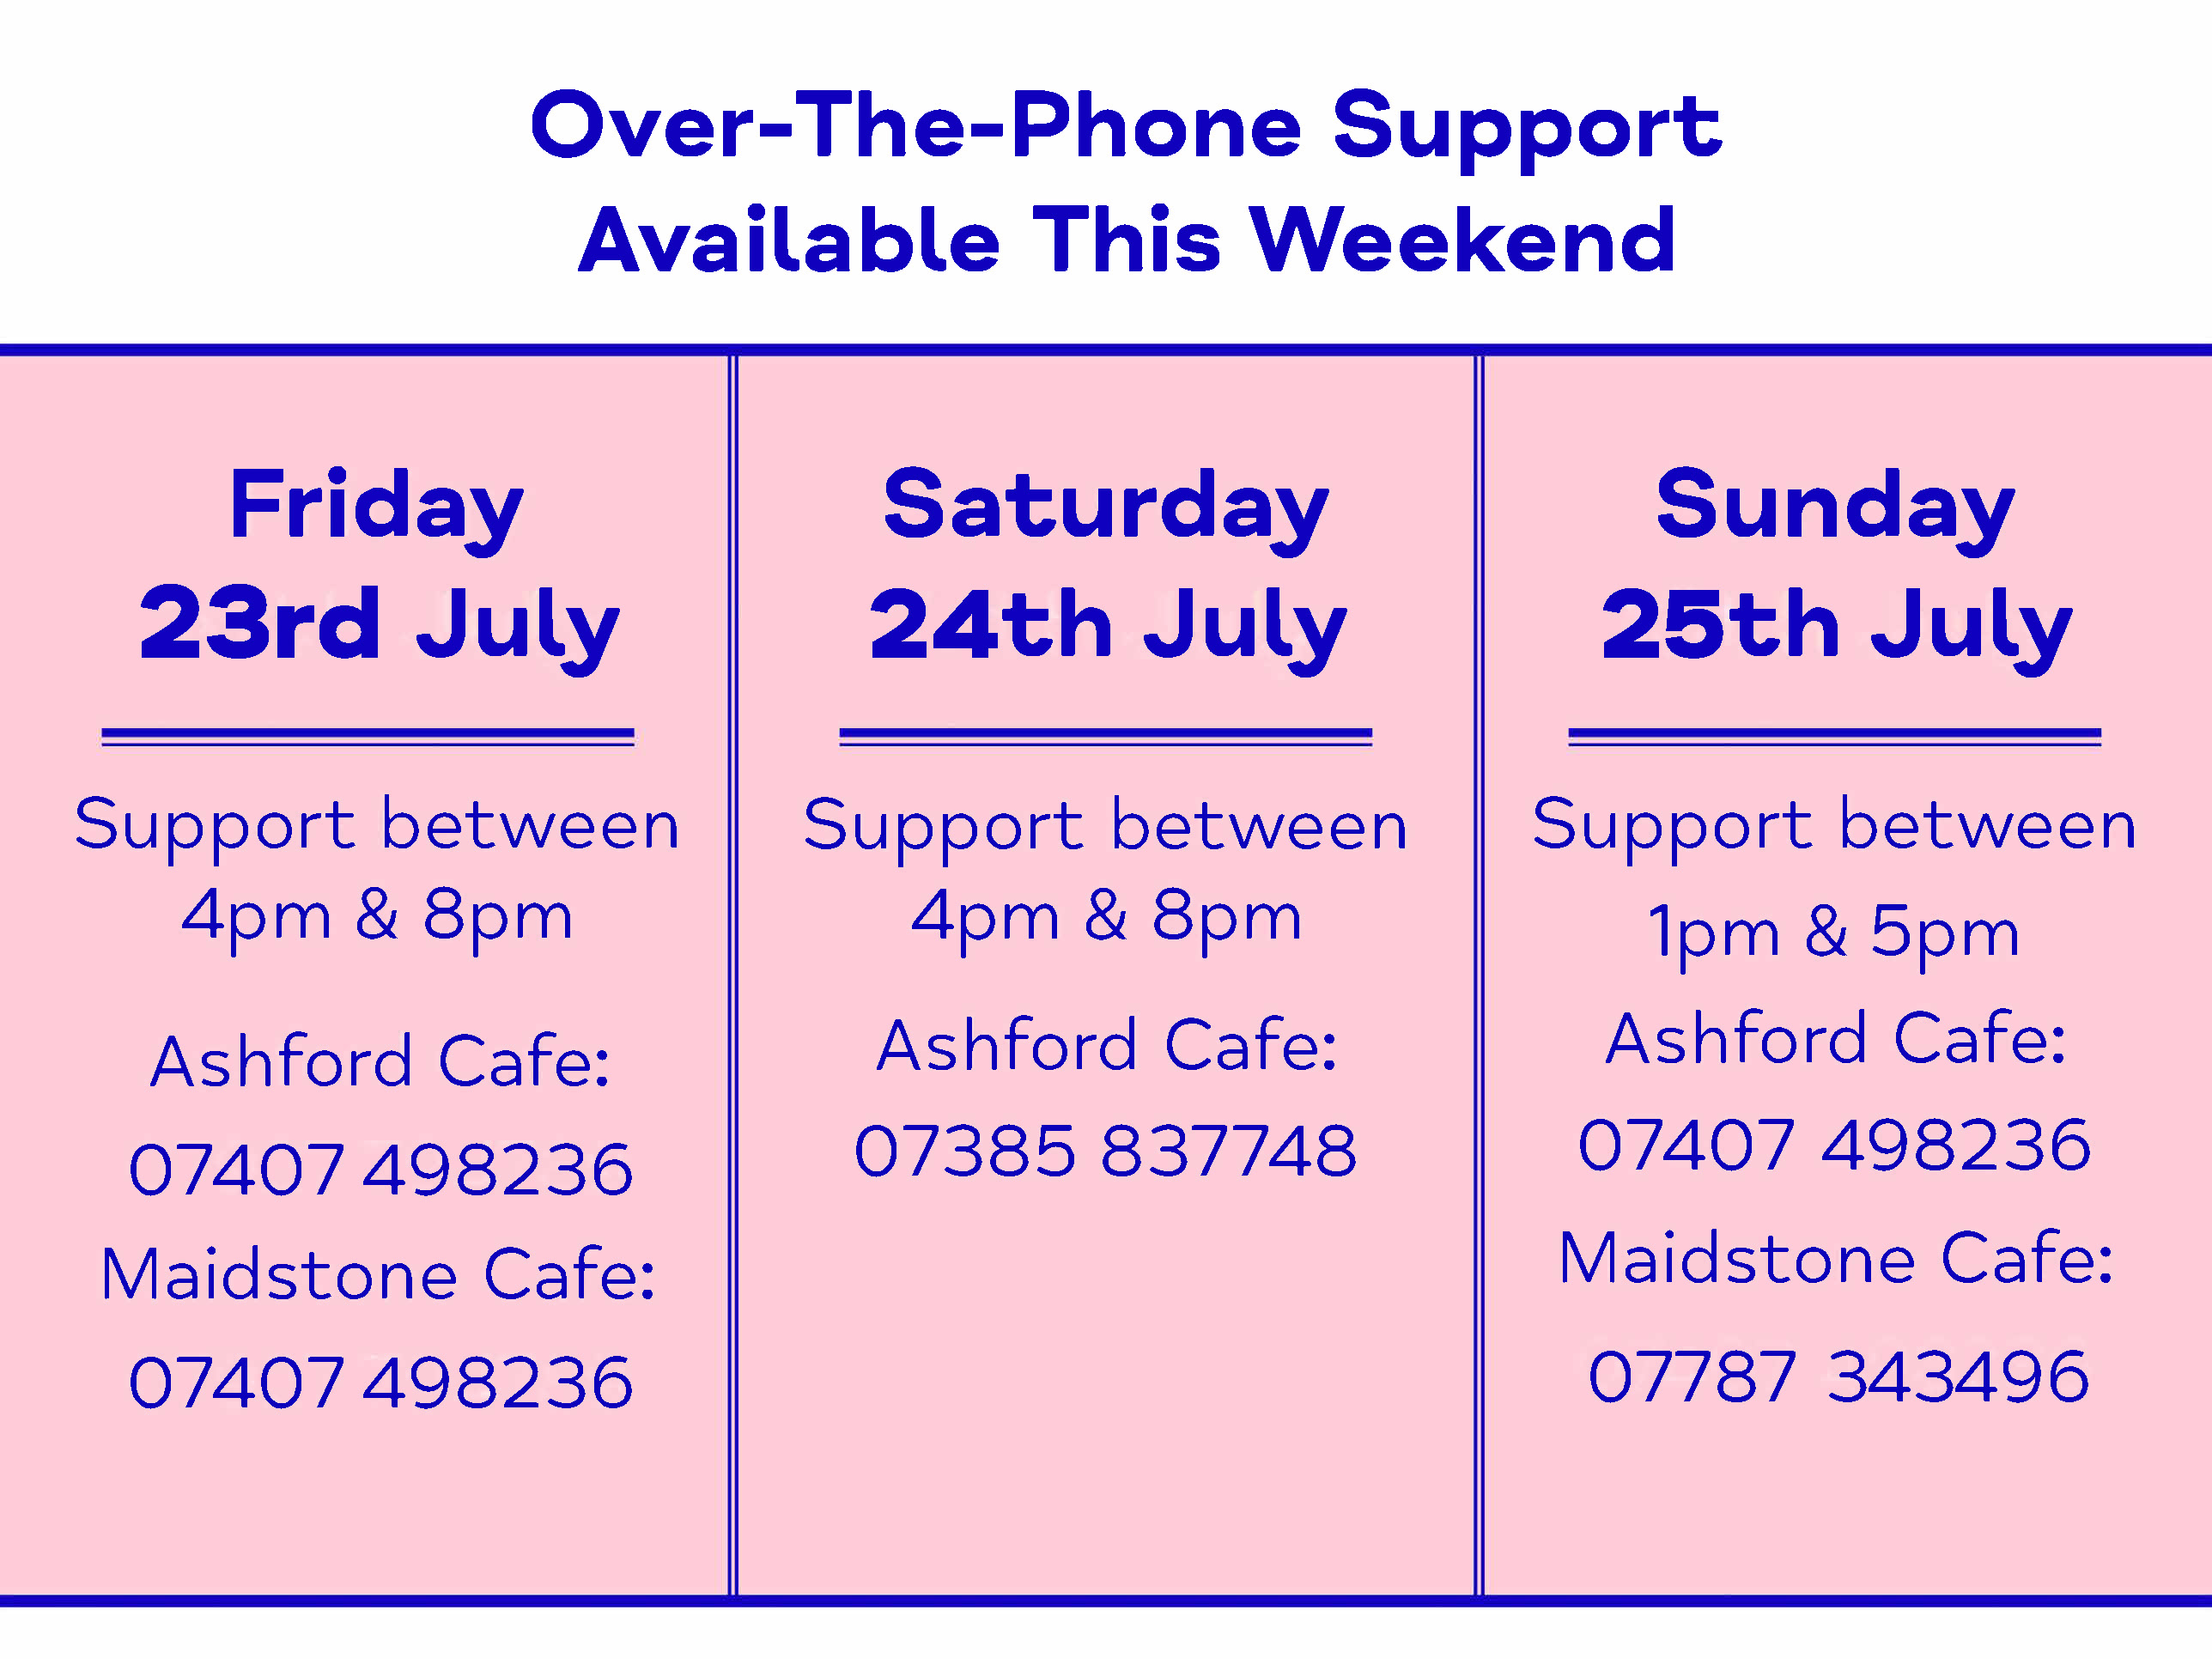 Over-The-Phone Support Available This Weekend. Friday 23rd July Support between 4pm & 8pm Ashford Cafe: 07407 498236 Maidstone Cafe: 07407 498236. Saturday 24th July Support between 4pm & 8pm Ashford Cafe: 07385 837748. Sunday 25th July Support between 1pm & 5pm Ashford Cafe: 07407 498236 Maidstone Cafe: 07787 343496.